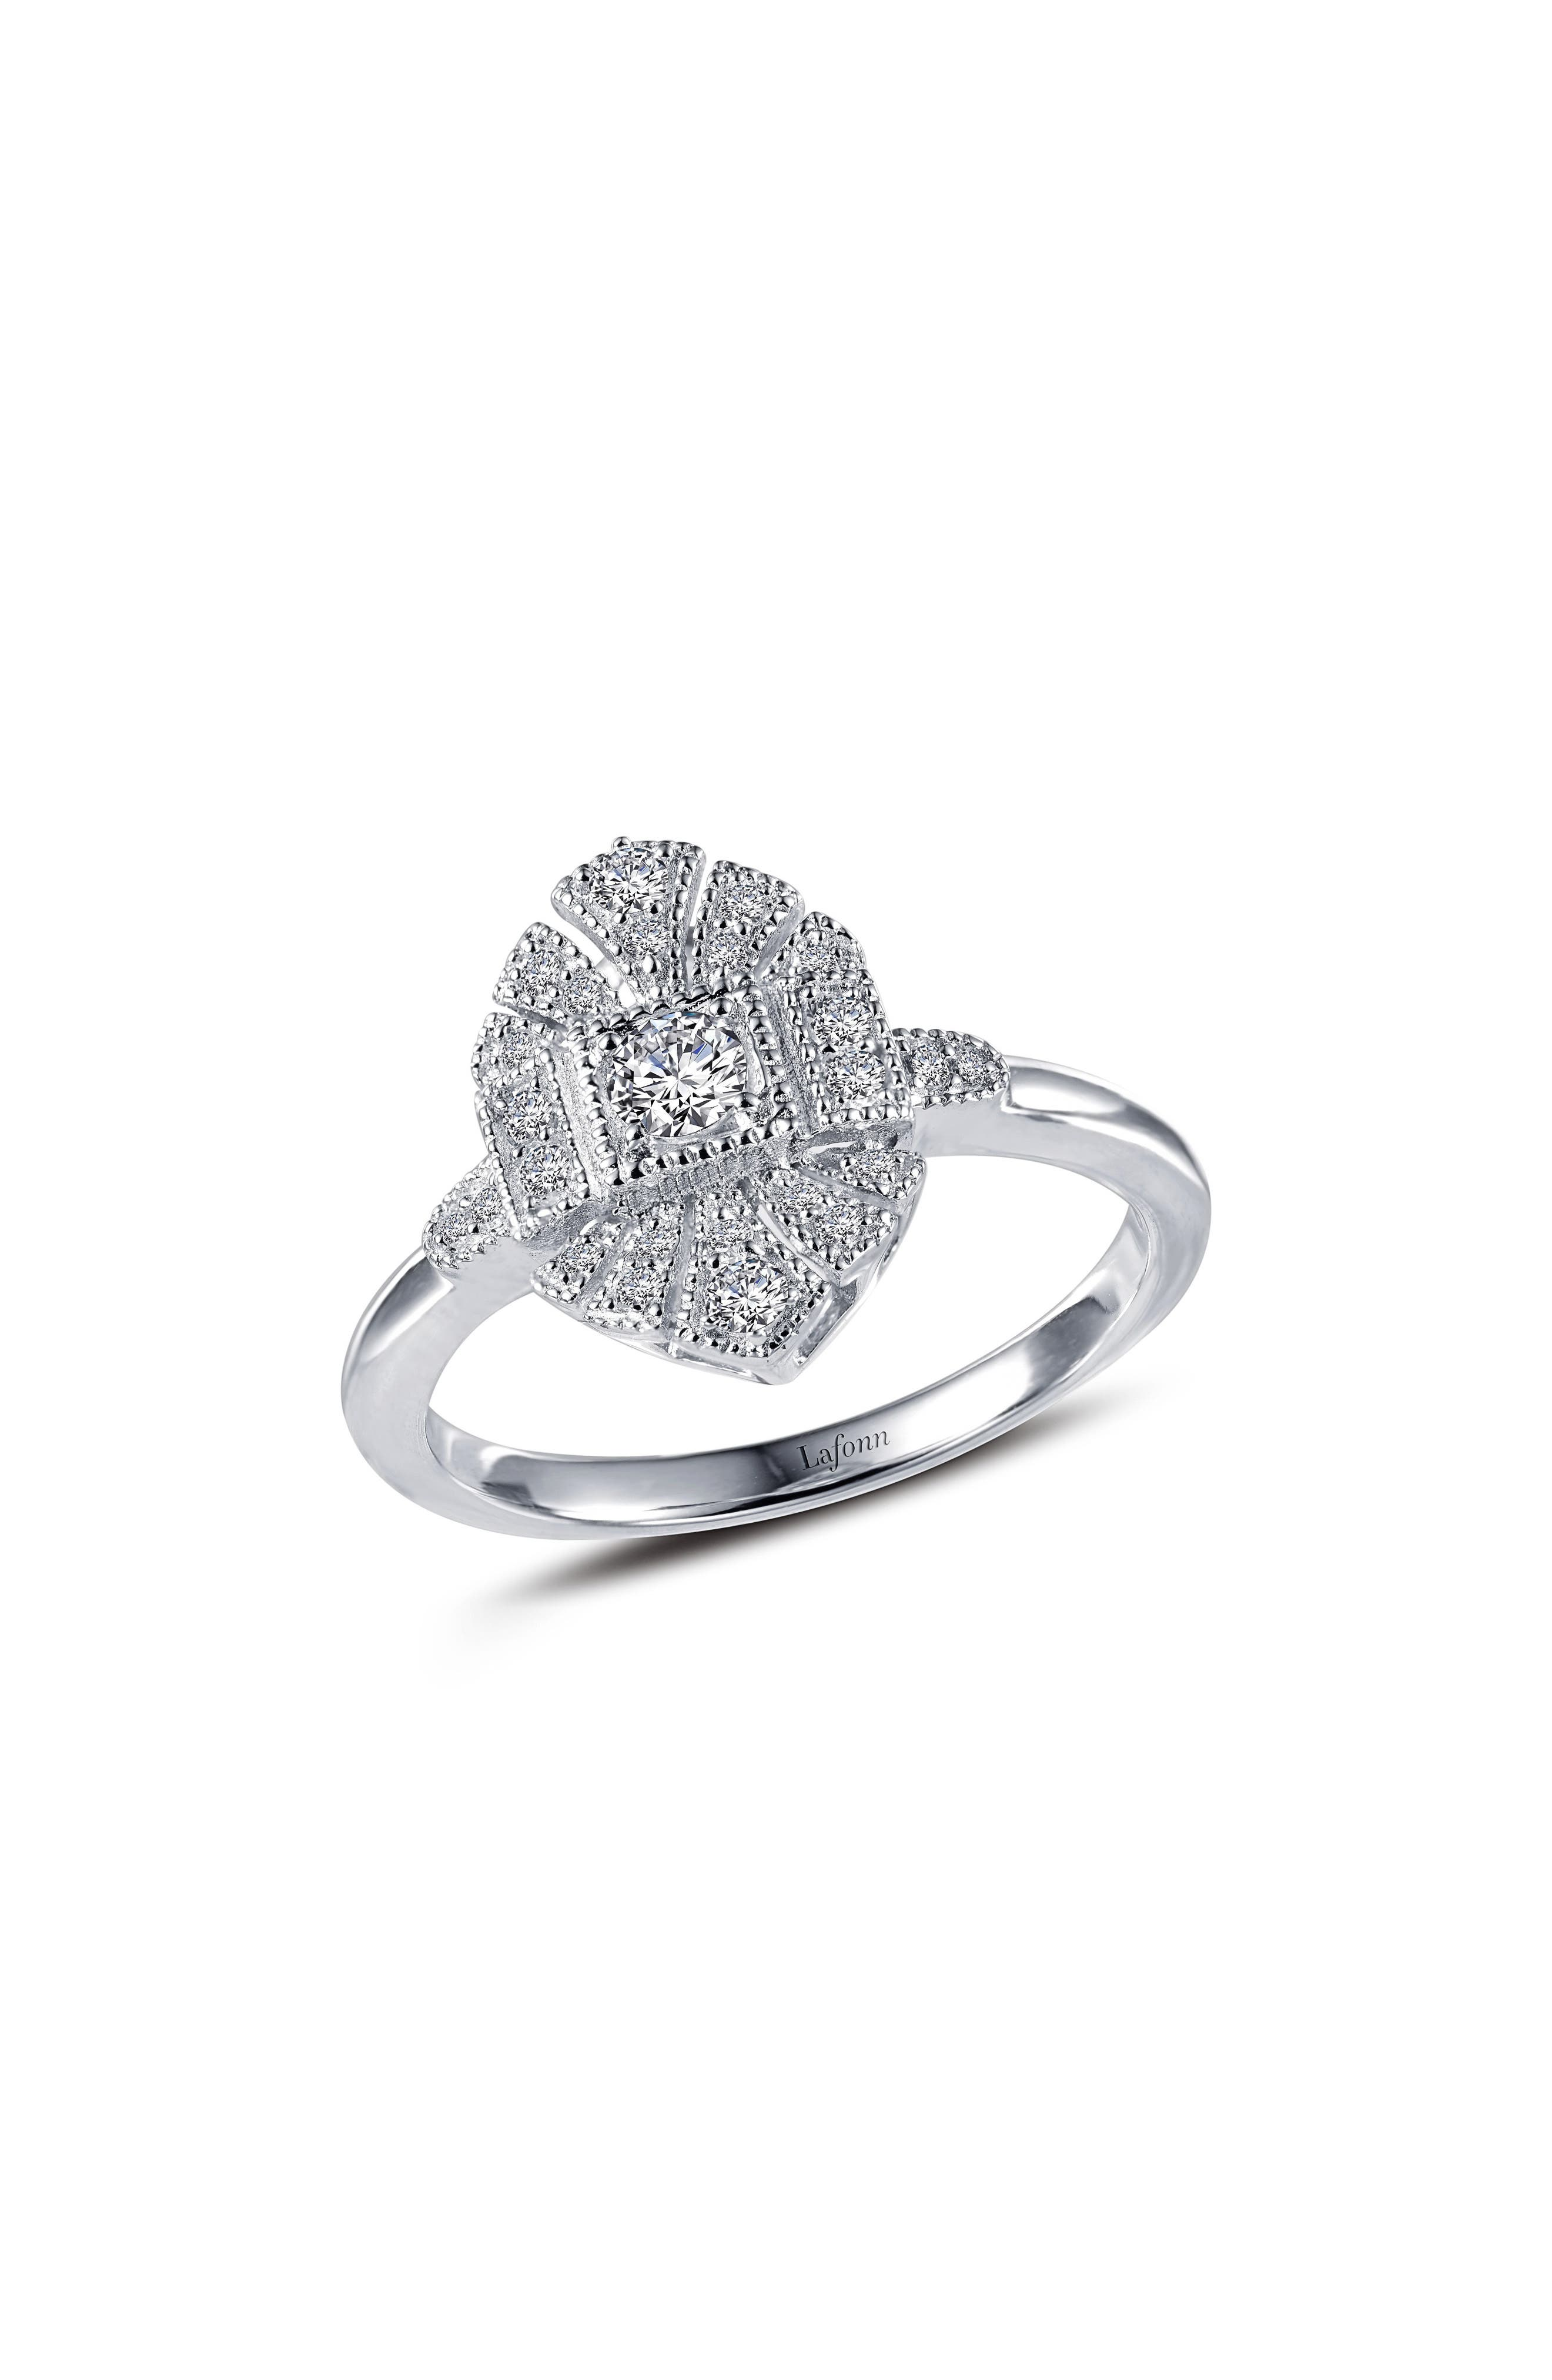 Heritage Simulated Diamond Ring,                             Main thumbnail 1, color,                             Silver/ Clear